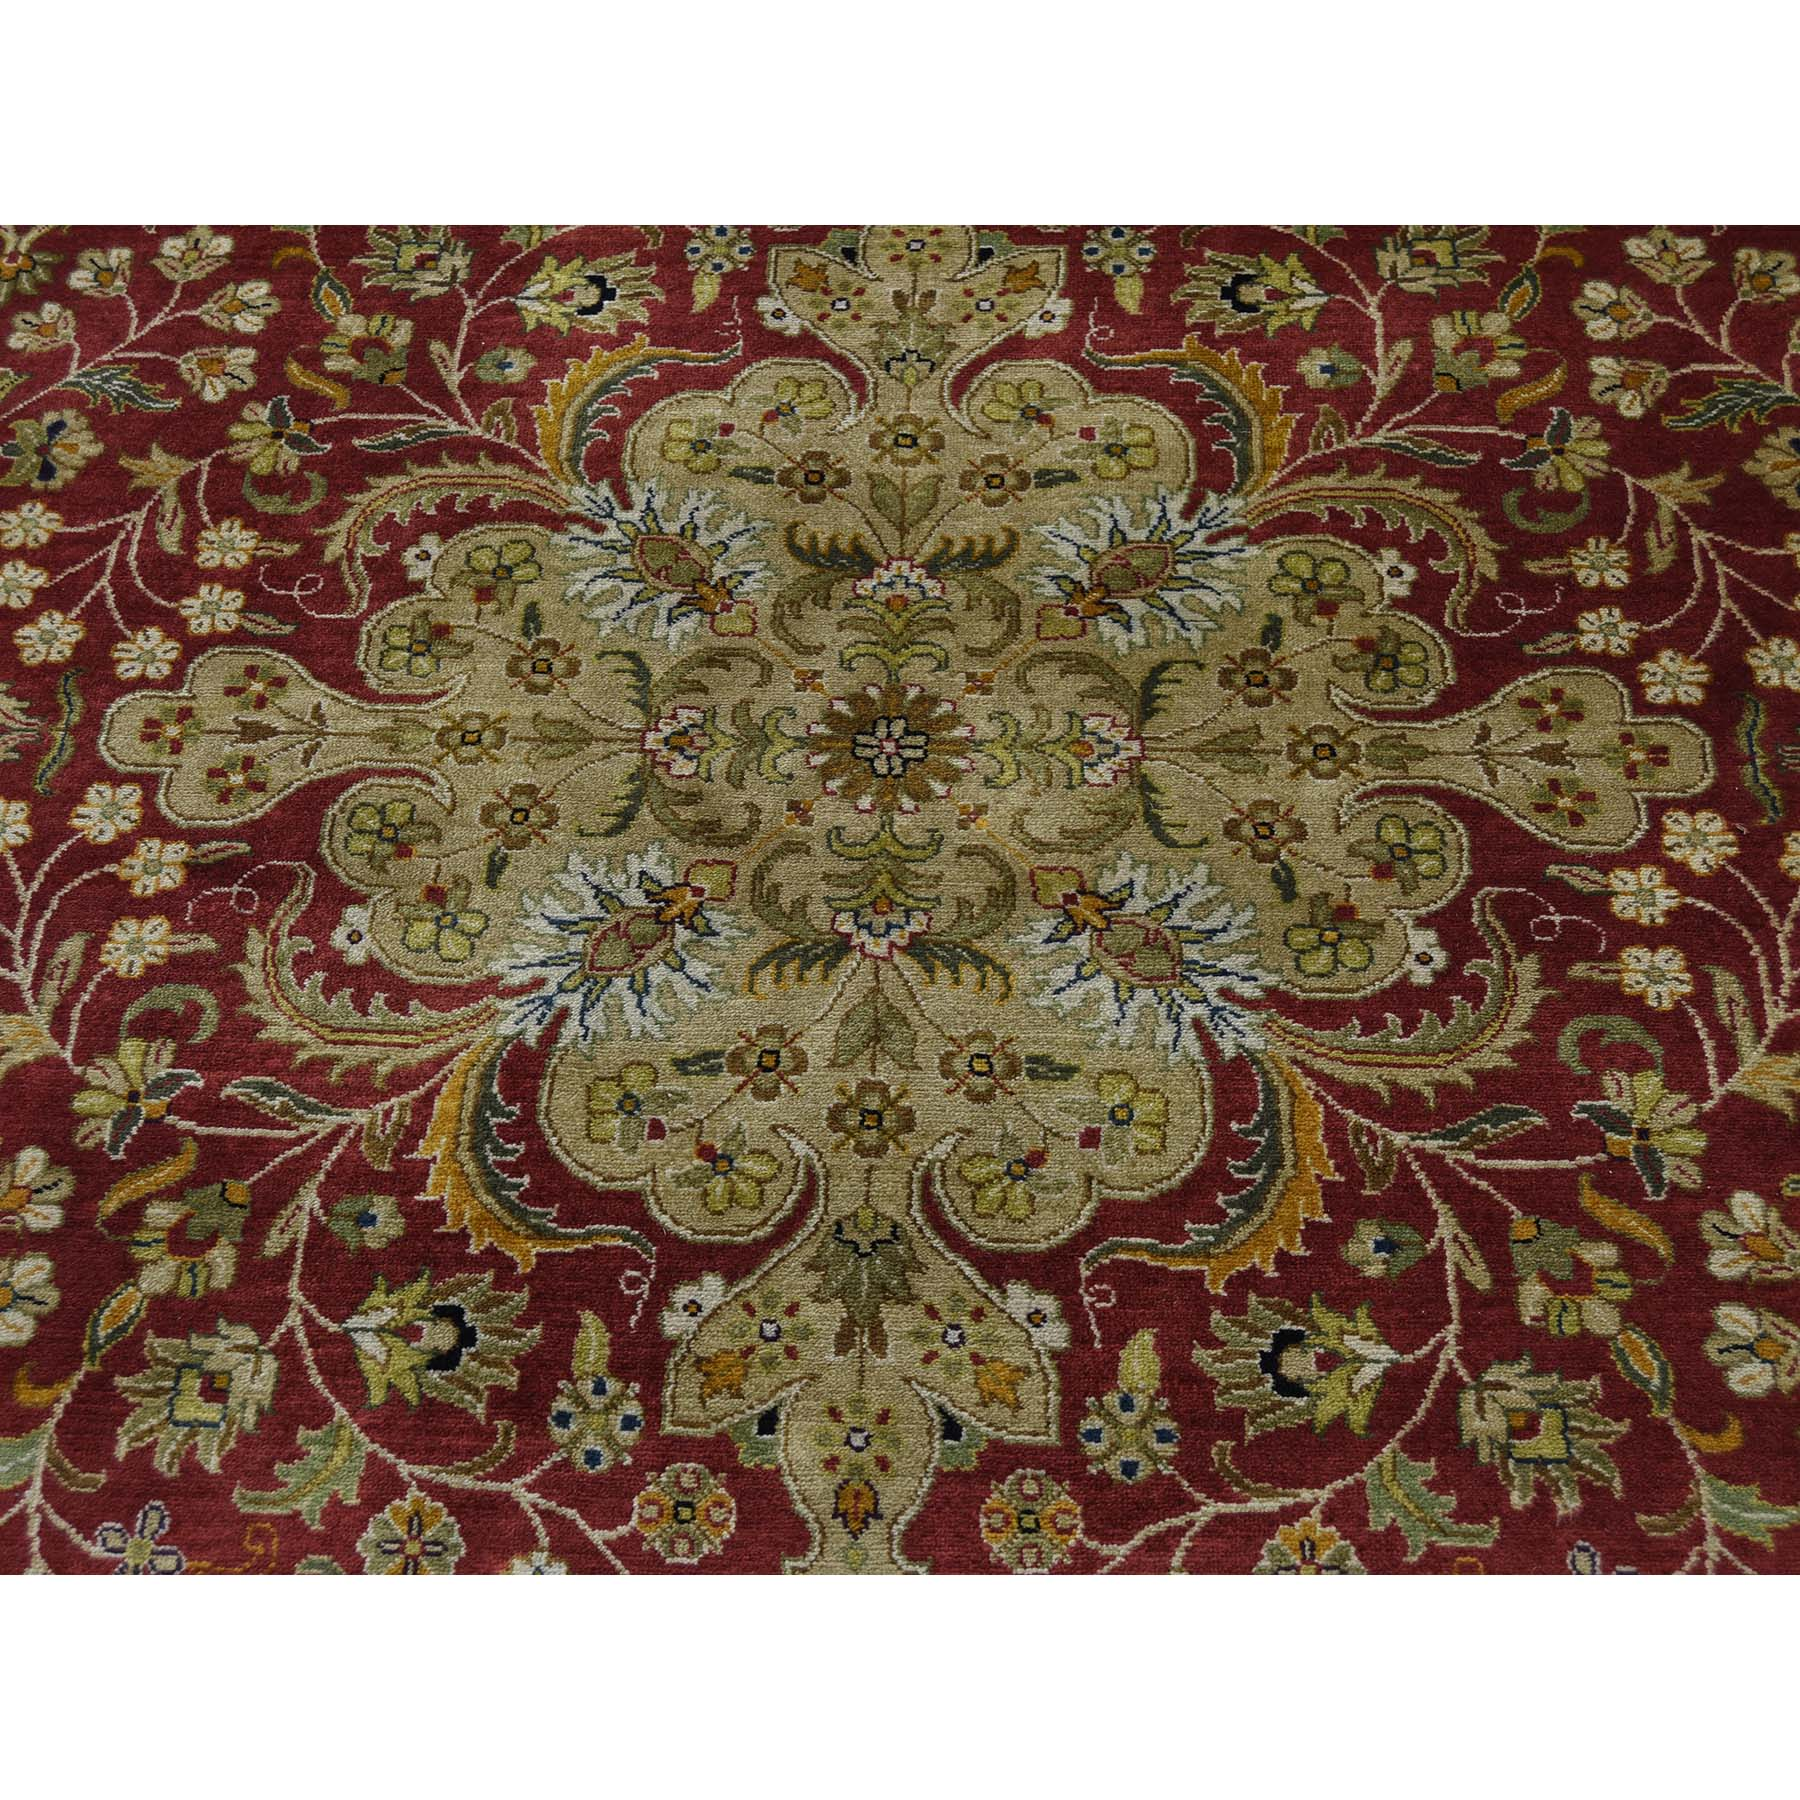 10-1 x13-8  New Zealand Wool 300 Kpsi Kashan Revival Hand-Knotted Rug